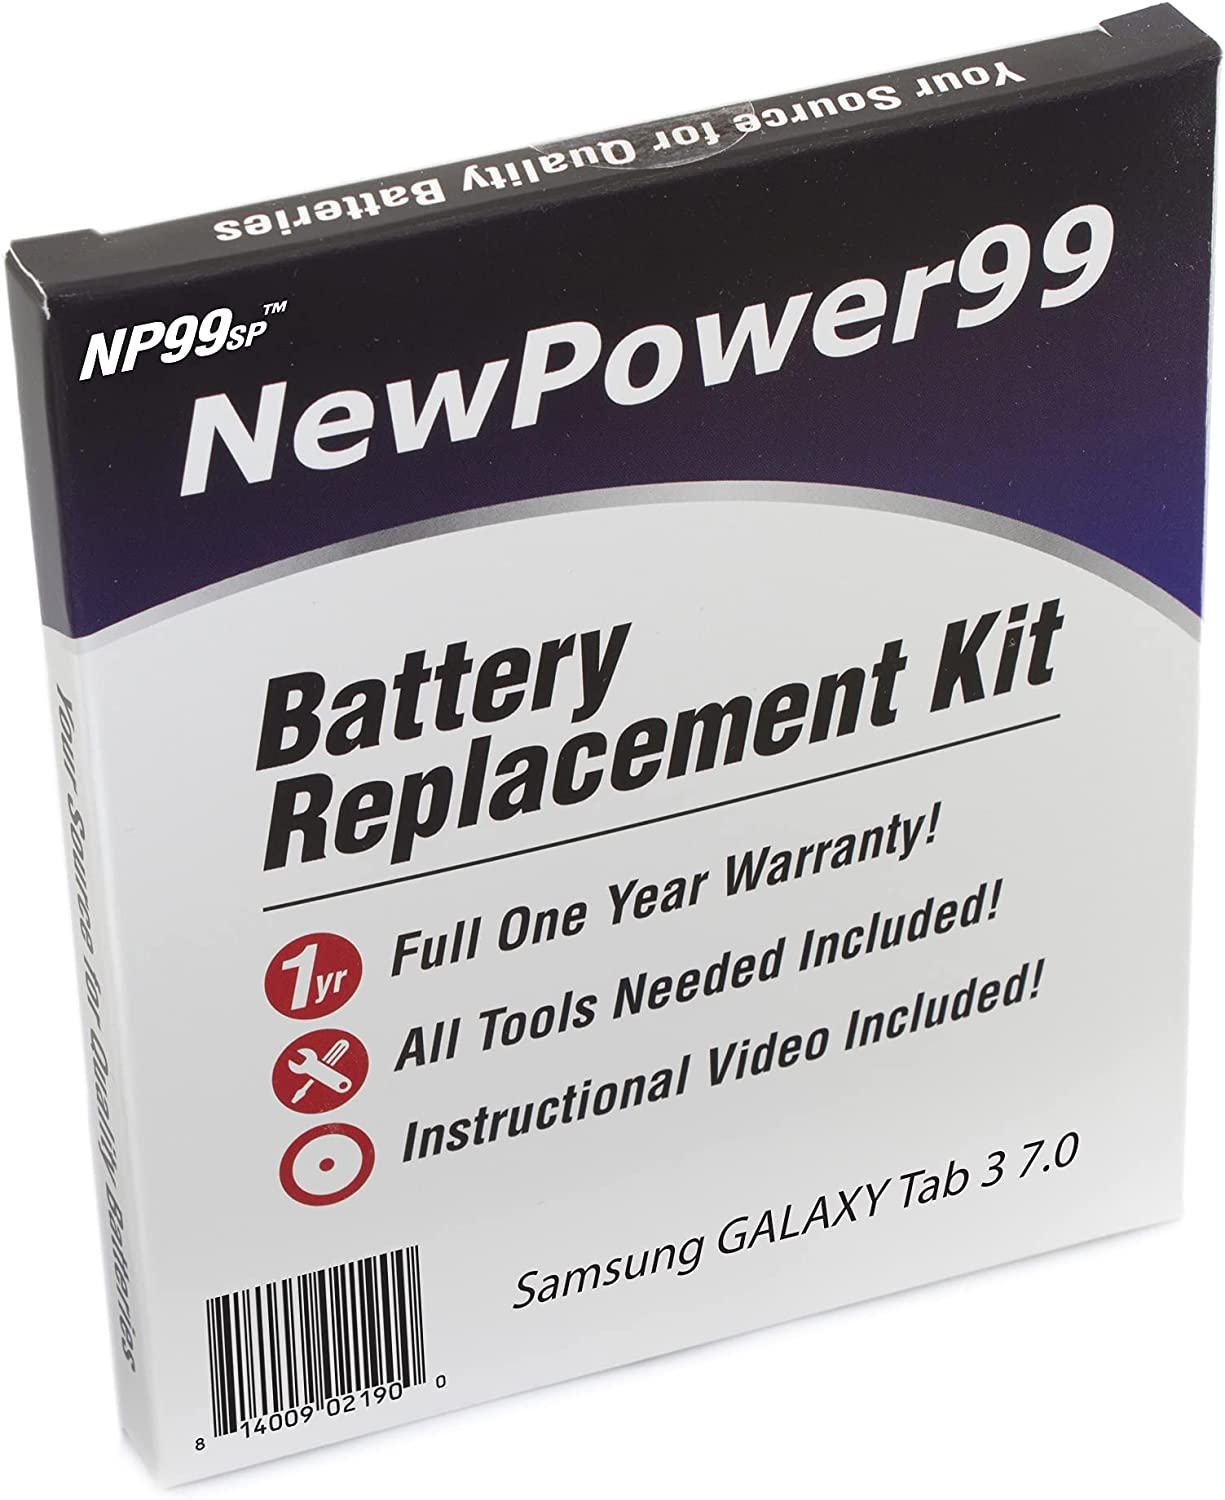 Battery Replacement Kit for Samsung Galaxy Tools 3 Tab Popular popular with 7.0 Super sale period limited